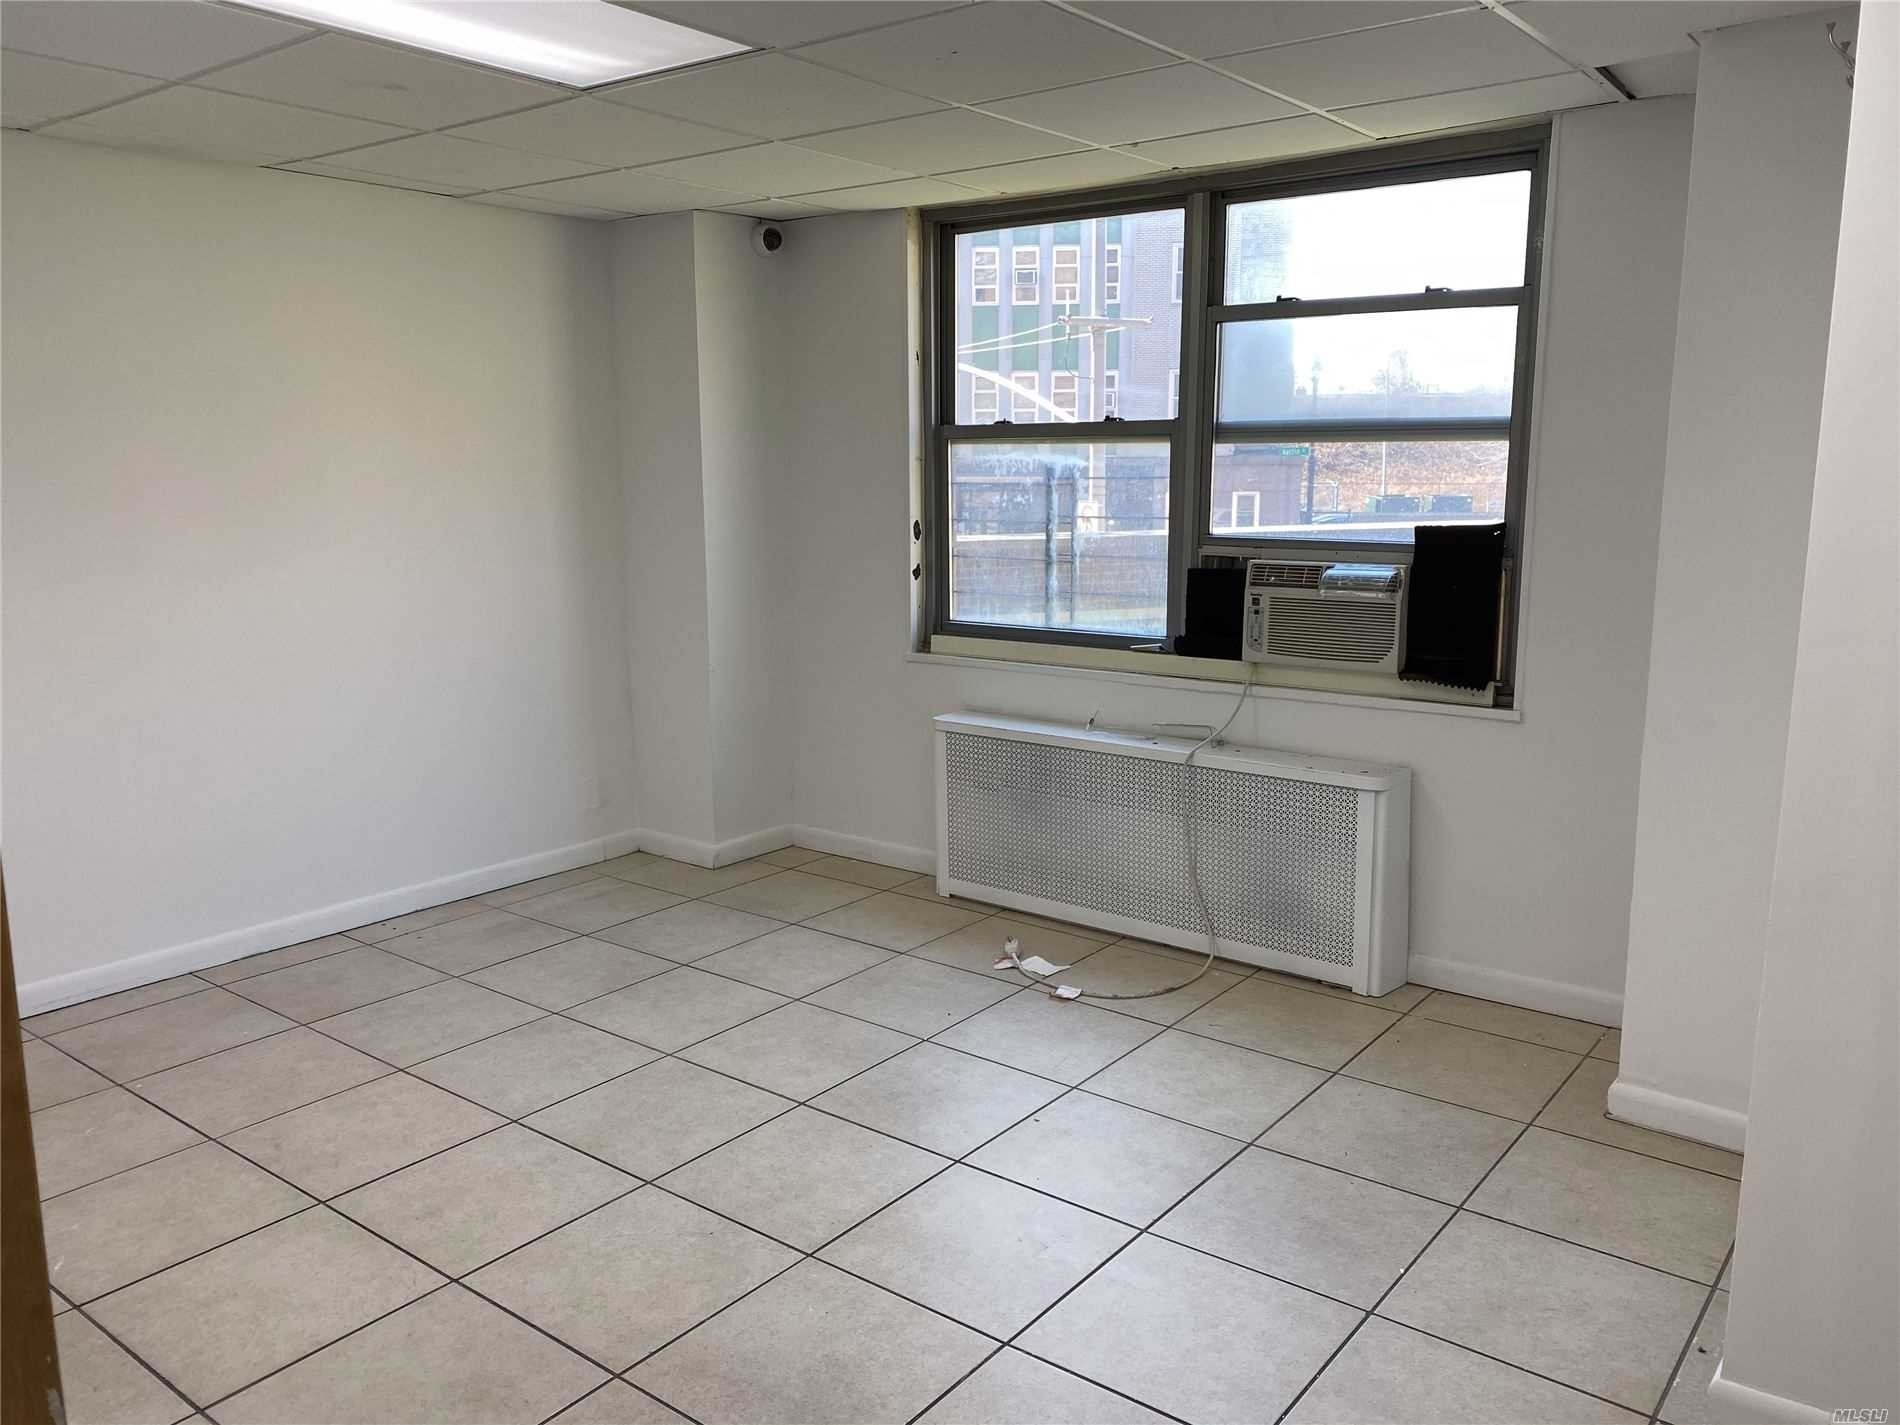 8. Commercial / Office at 104-40 Queens Boulevard, 1C/D Rego Park, Queens, NY 11375